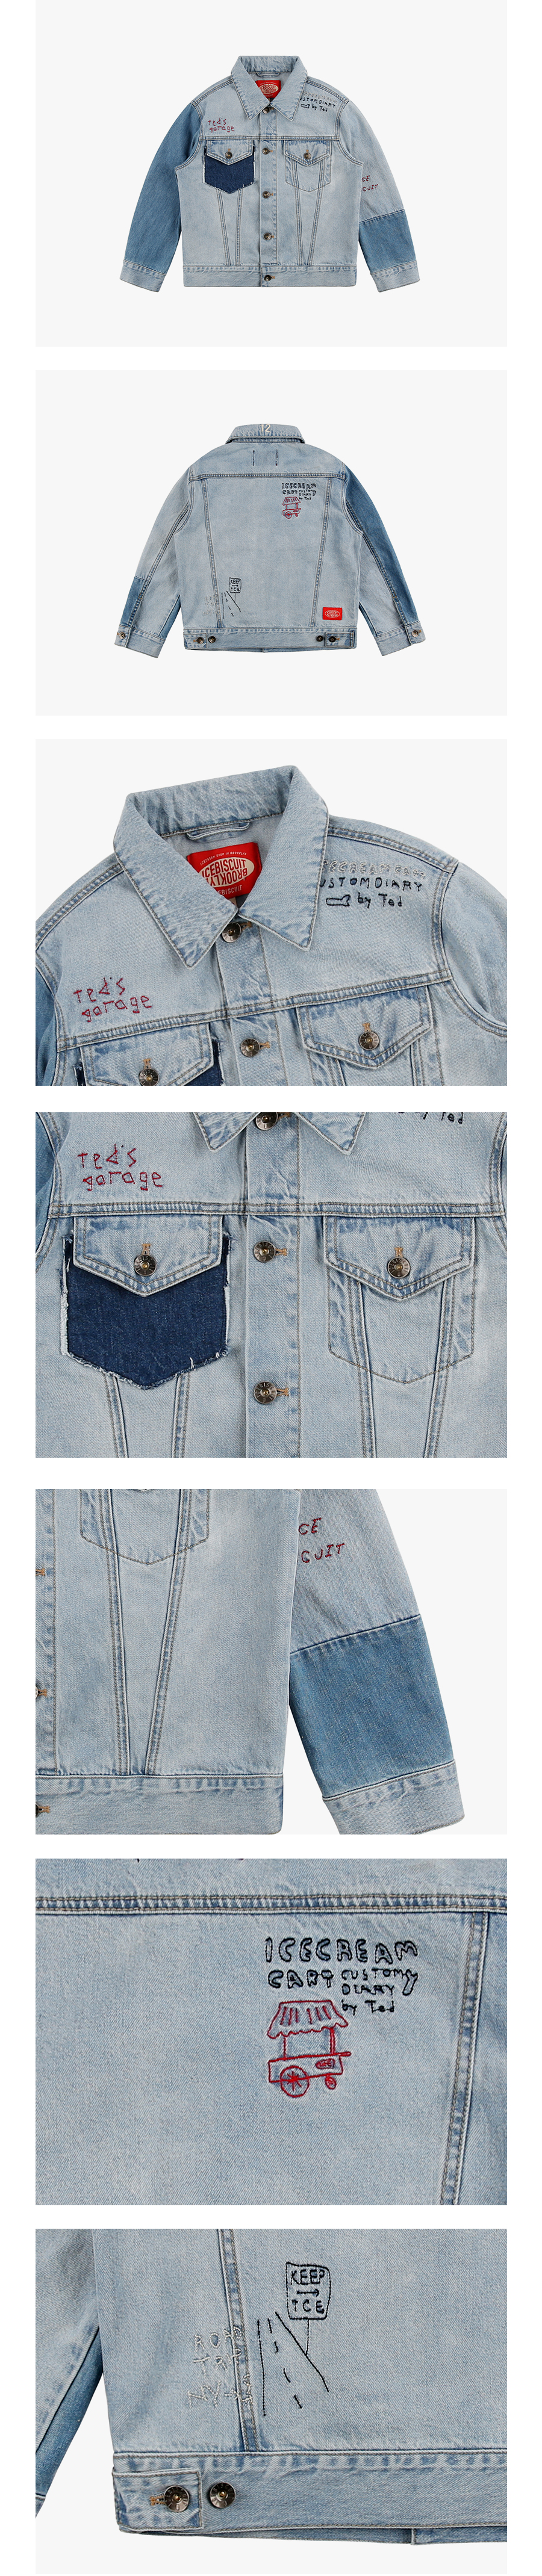 Ted graffiti denim jacket 상세 이미지